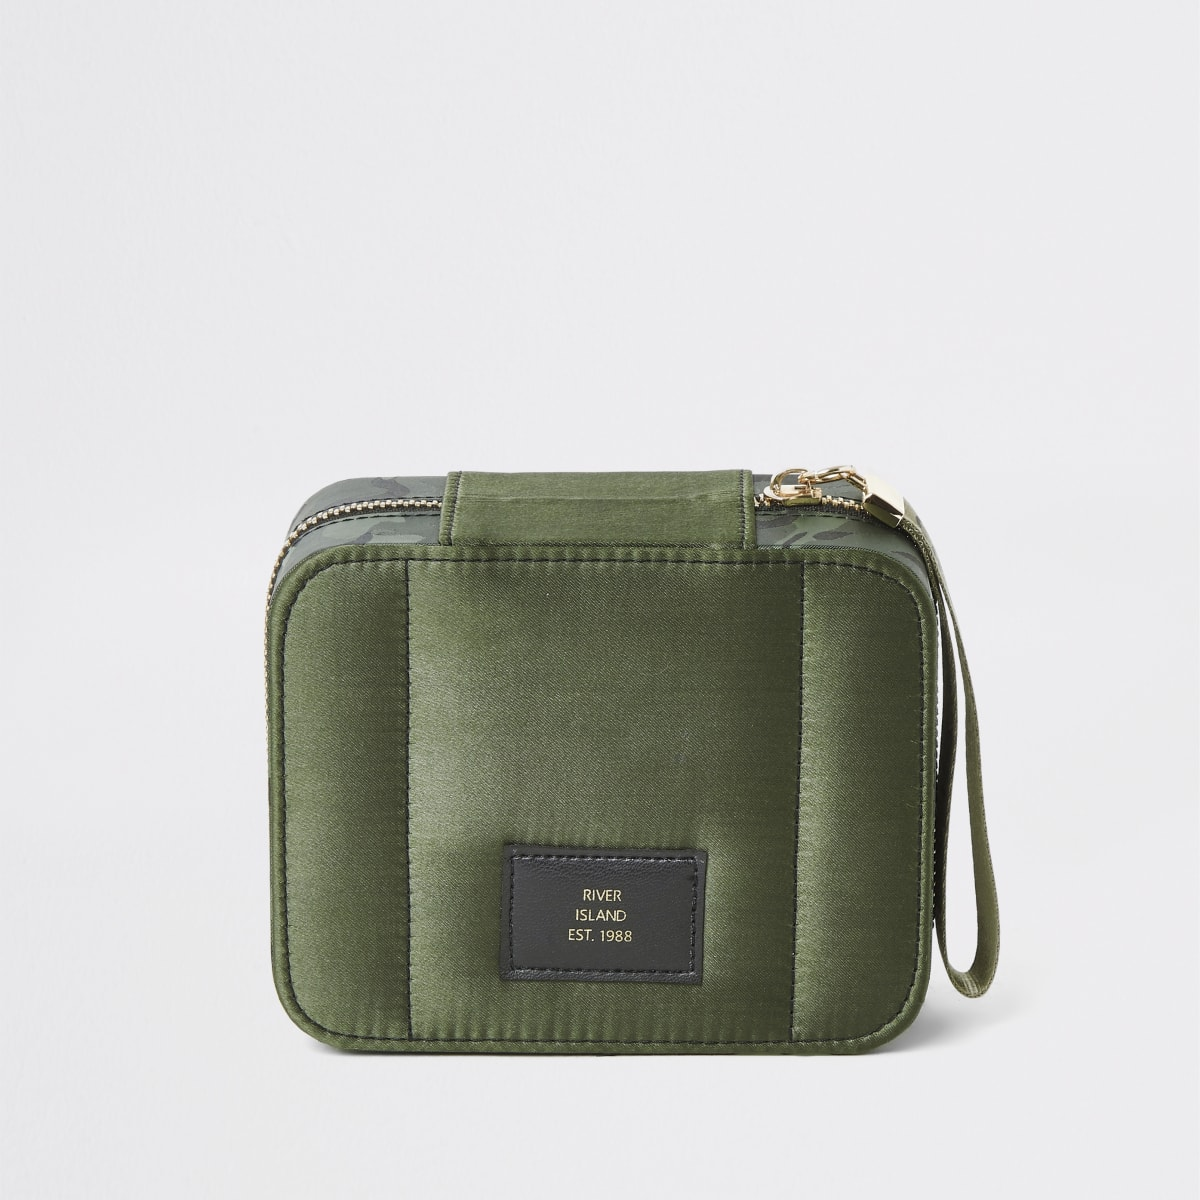 Khaki camo square satin make-up bag